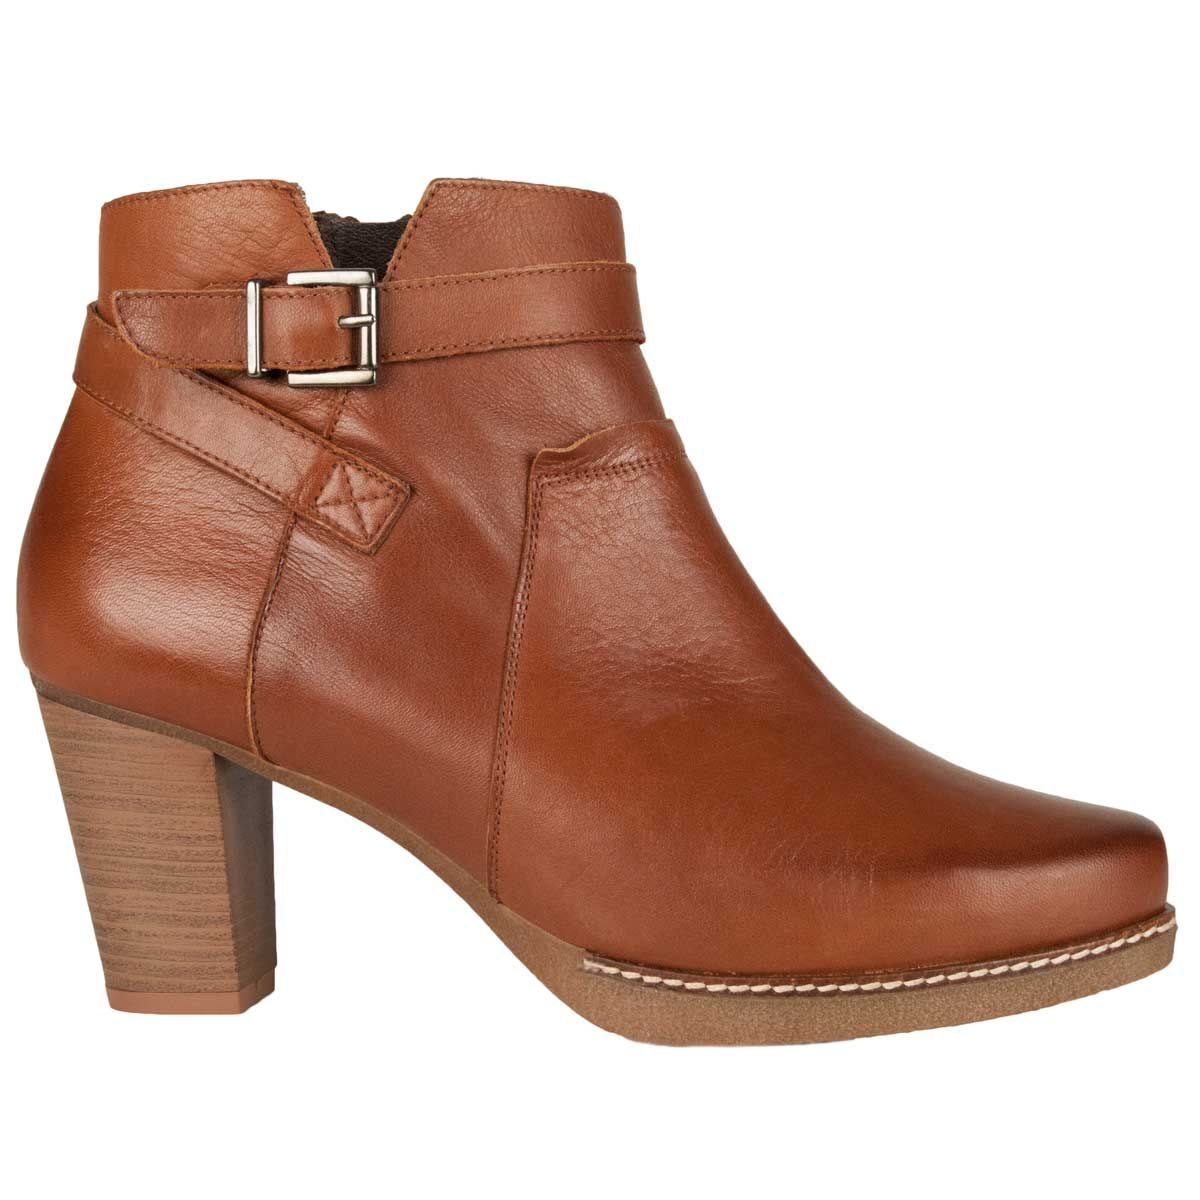 Montevita Buckle Ankle Boot in Brown